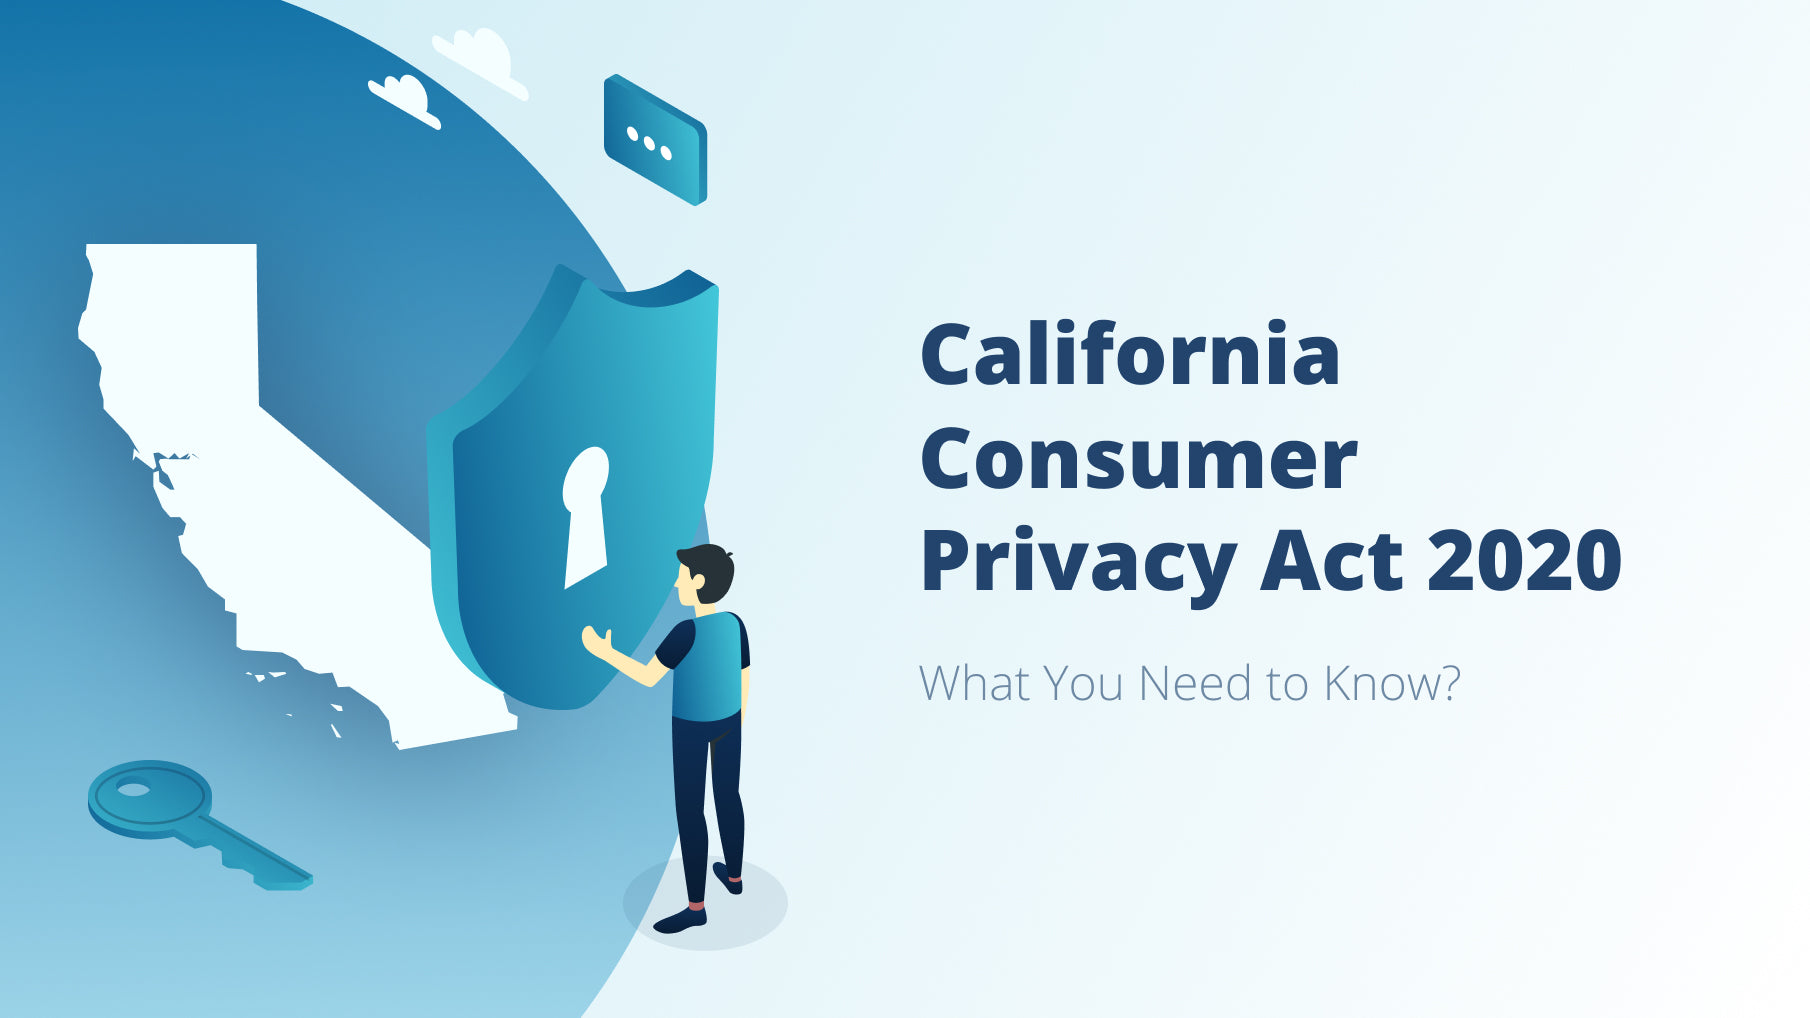 What is California Consumer Privacy Act (CCPA)?